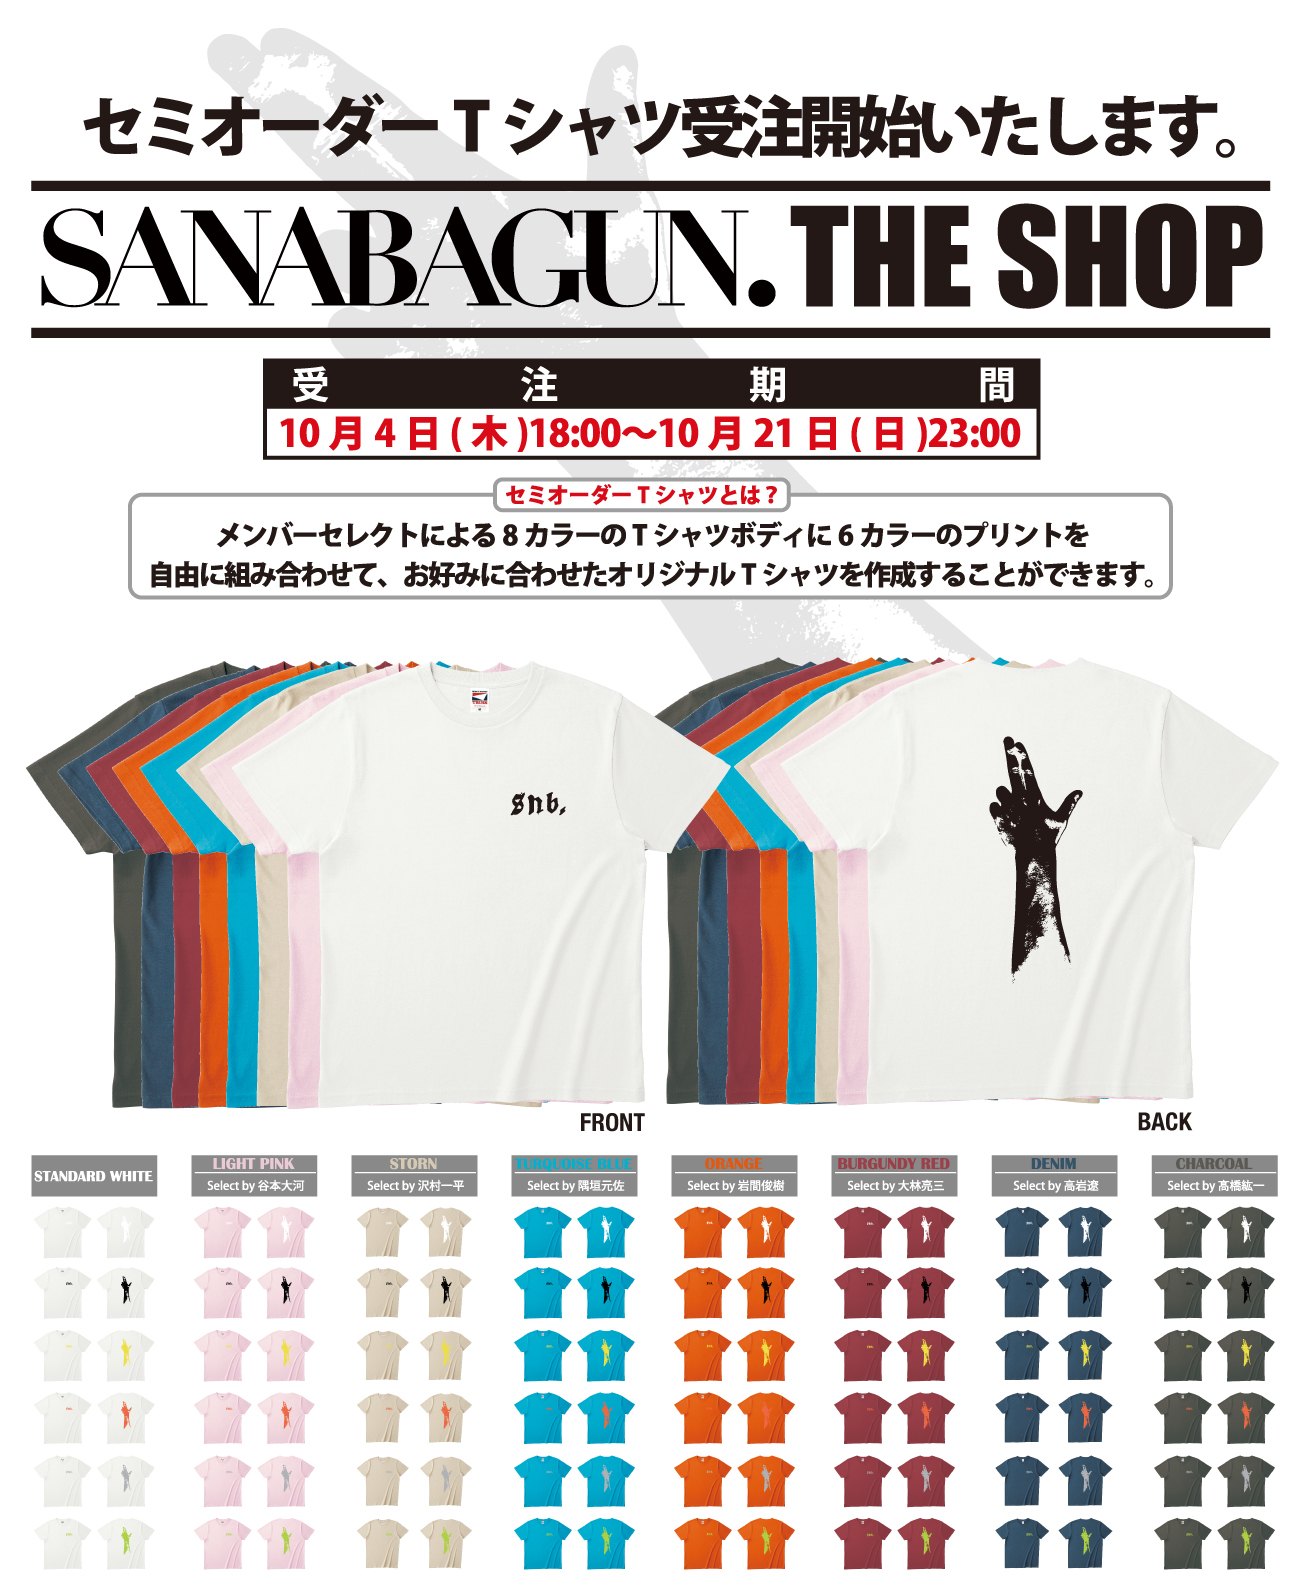 『SANABAGUN. THE SHOP』